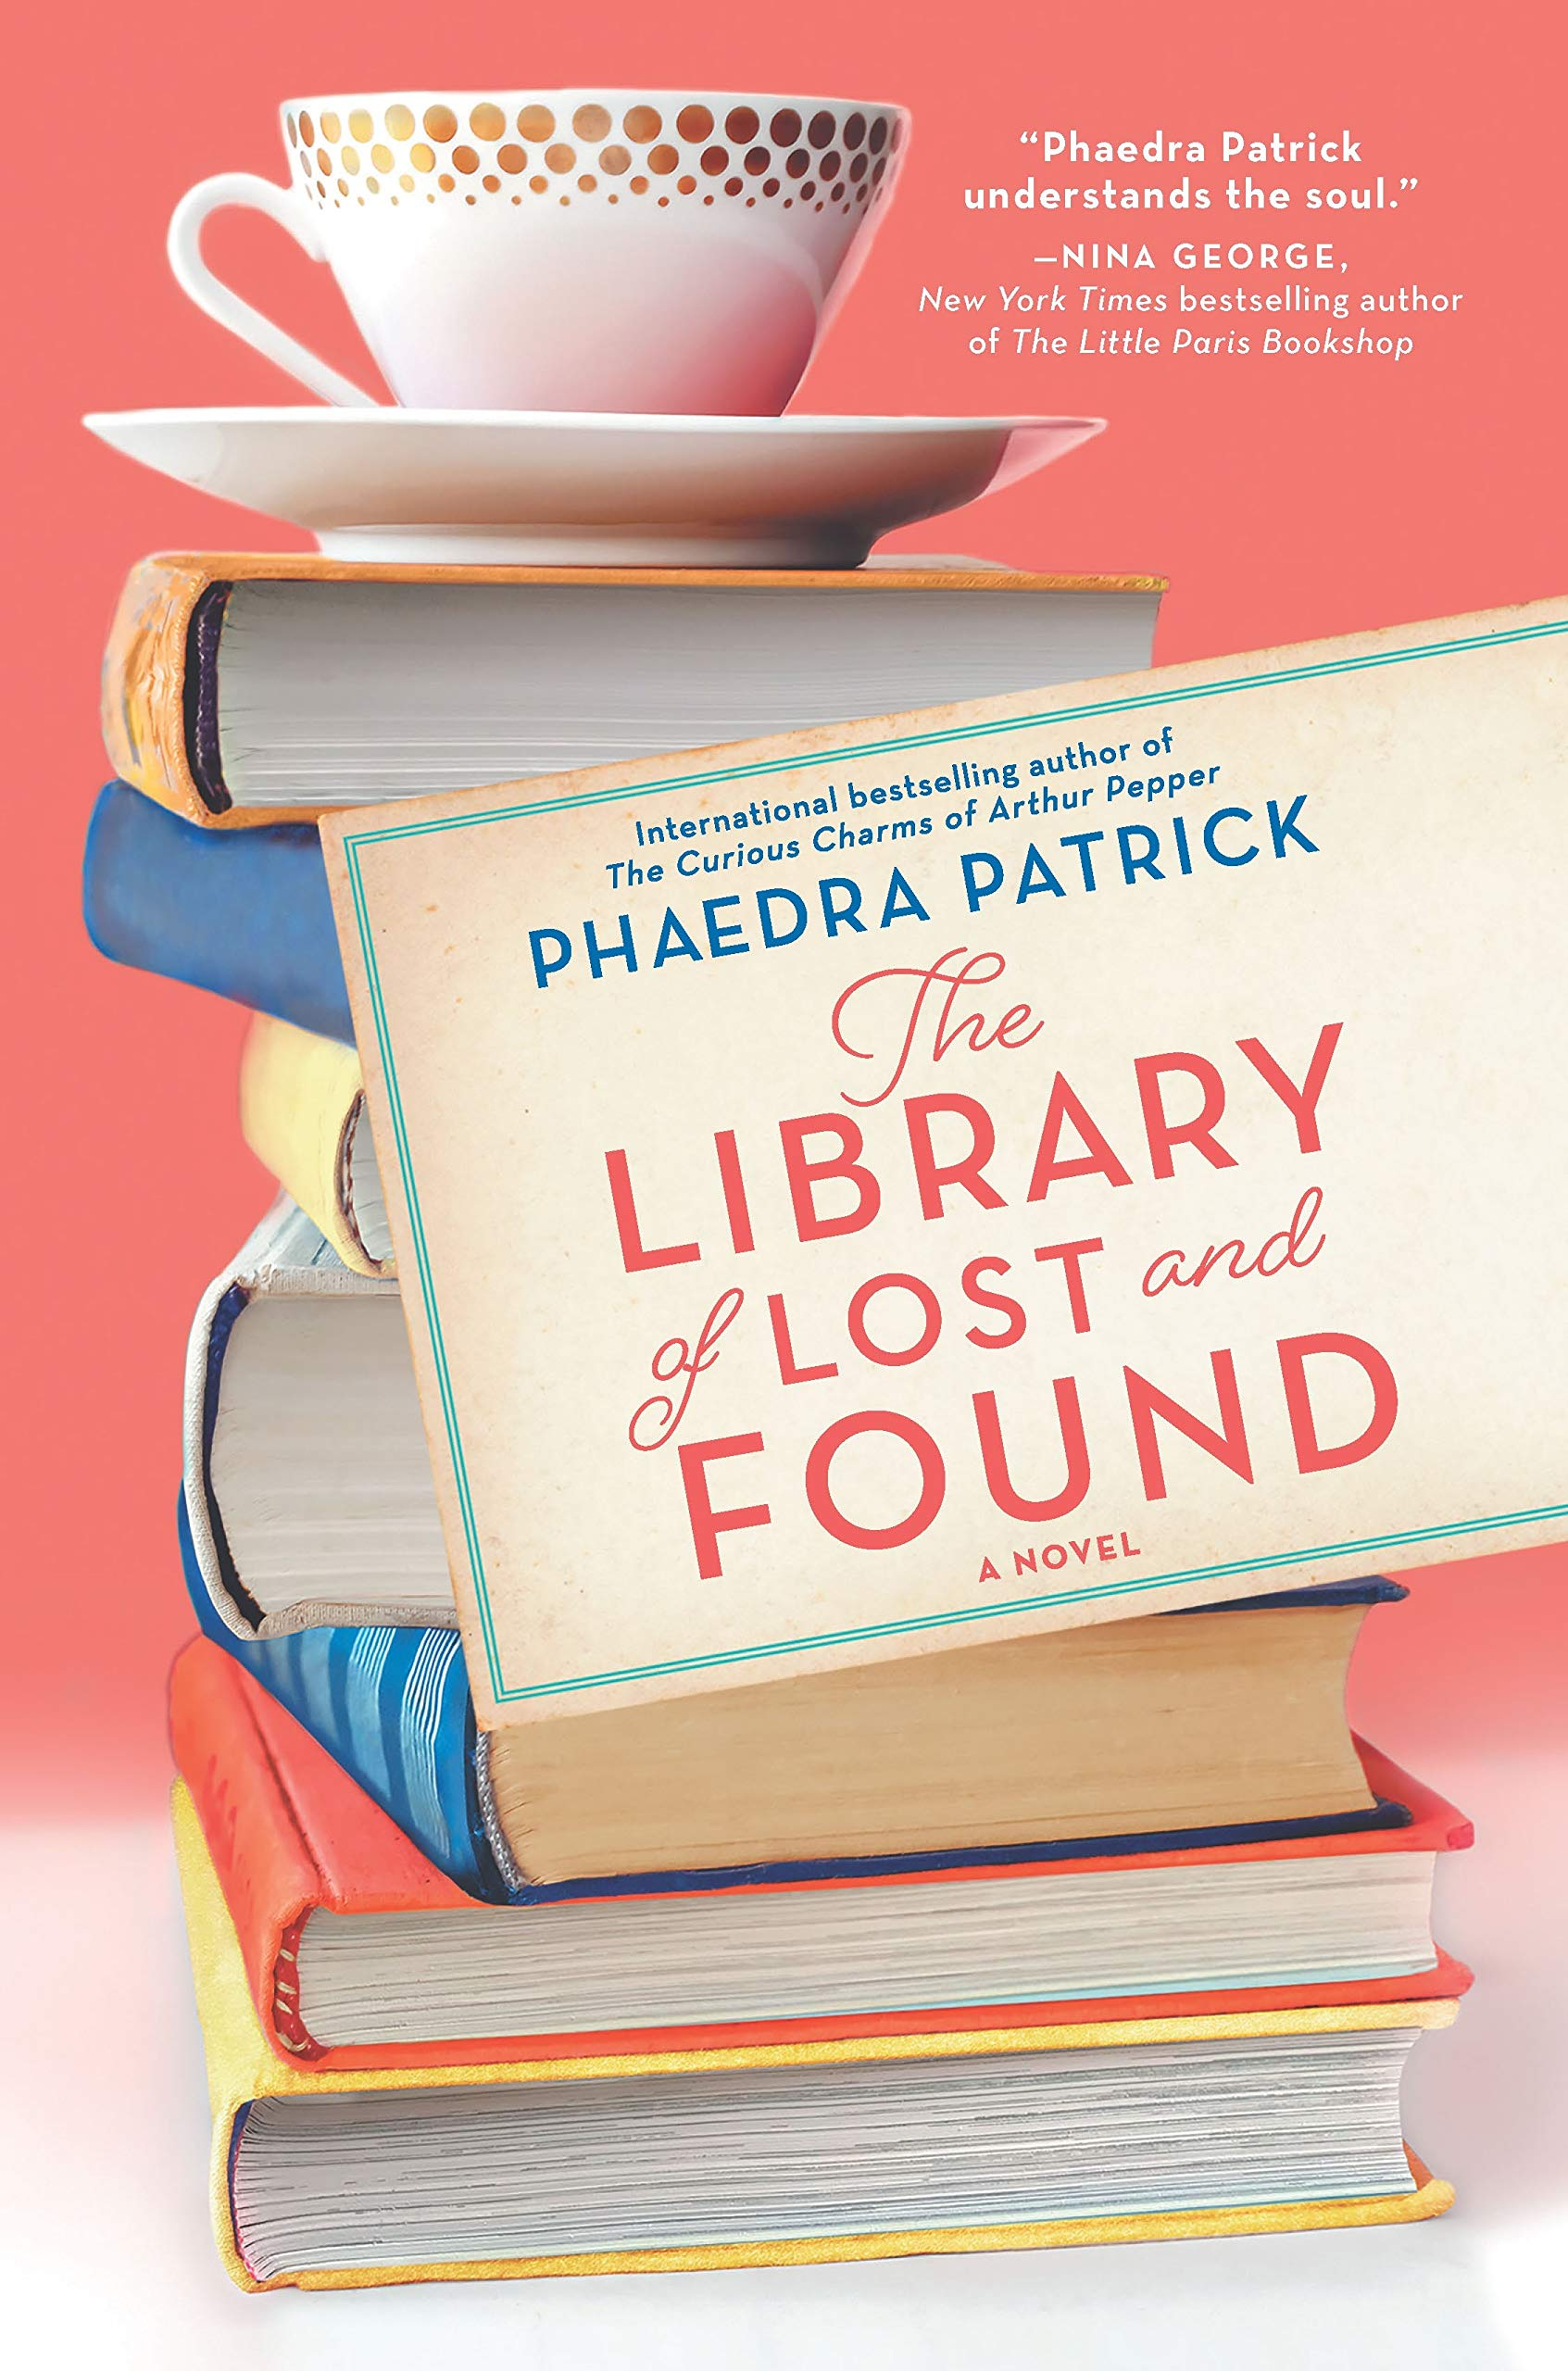 The Library of Lost and Found by Phaedra Patrick, ISBN: 9780778369356